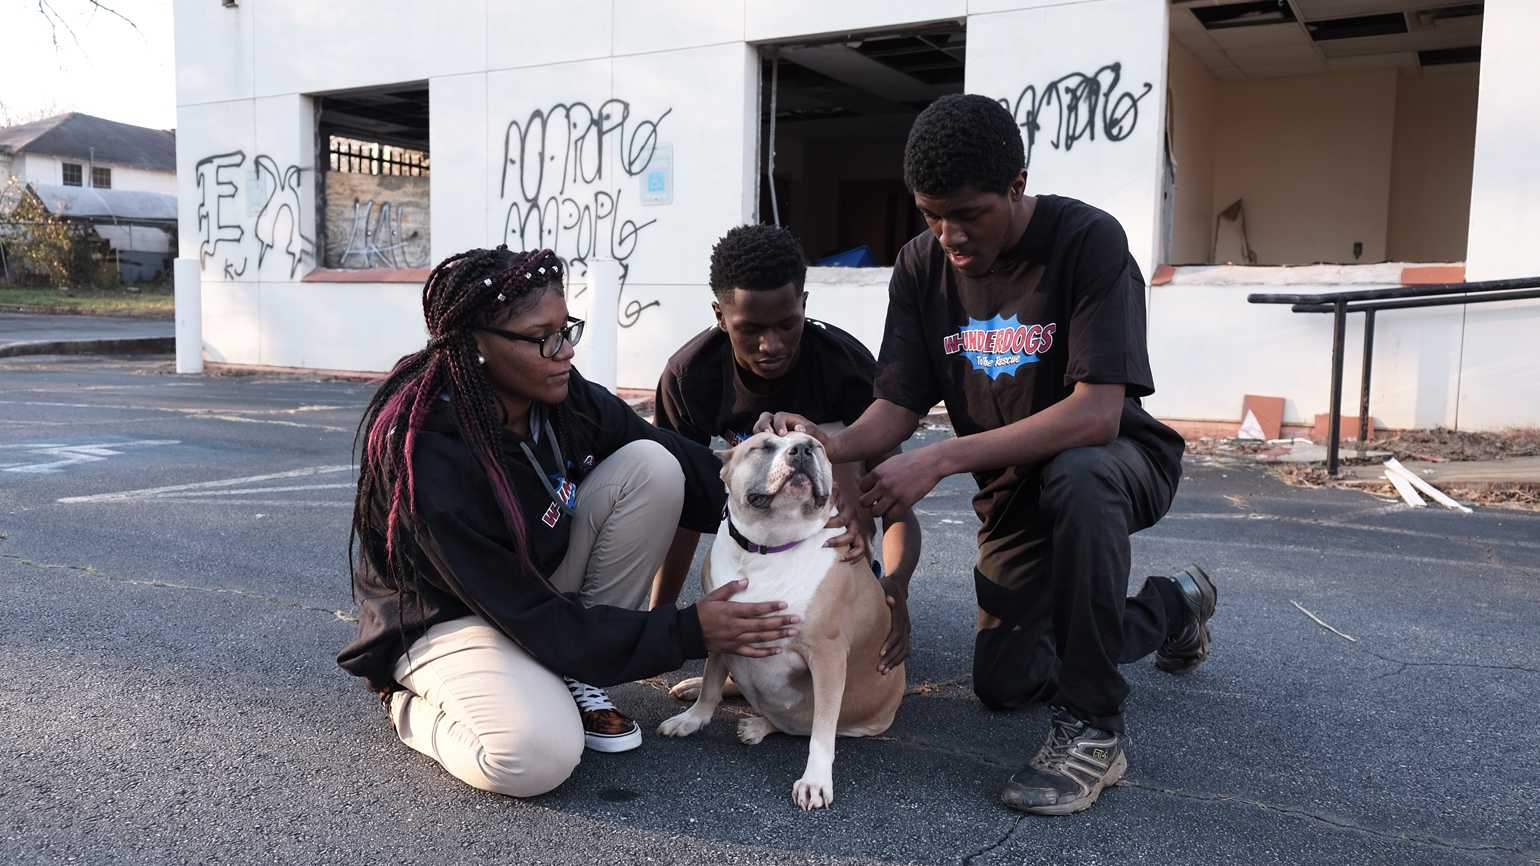 Cydney, James and Thomas of the W-Underdogs team. Photo credit: Roy Gumpel